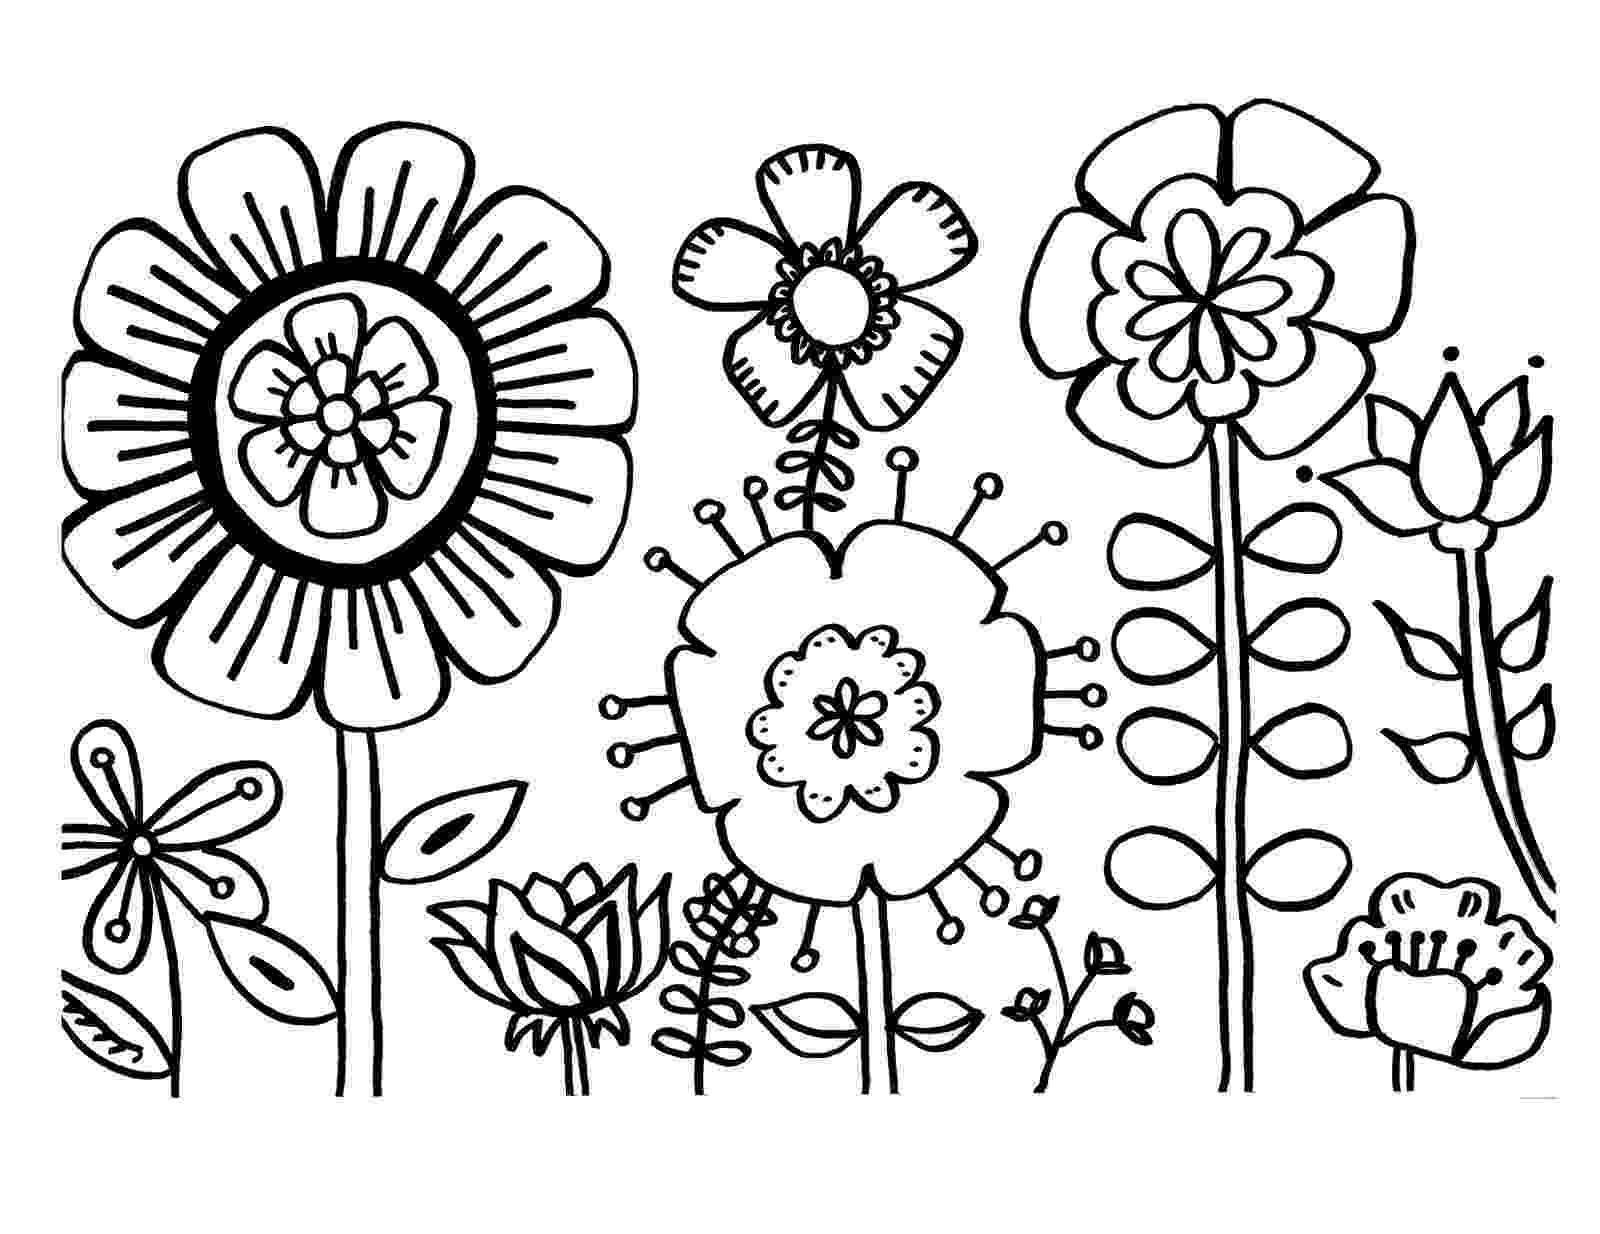 free flower pictures to print and color free printable flower coloring pages for kids best print flower to free and color pictures